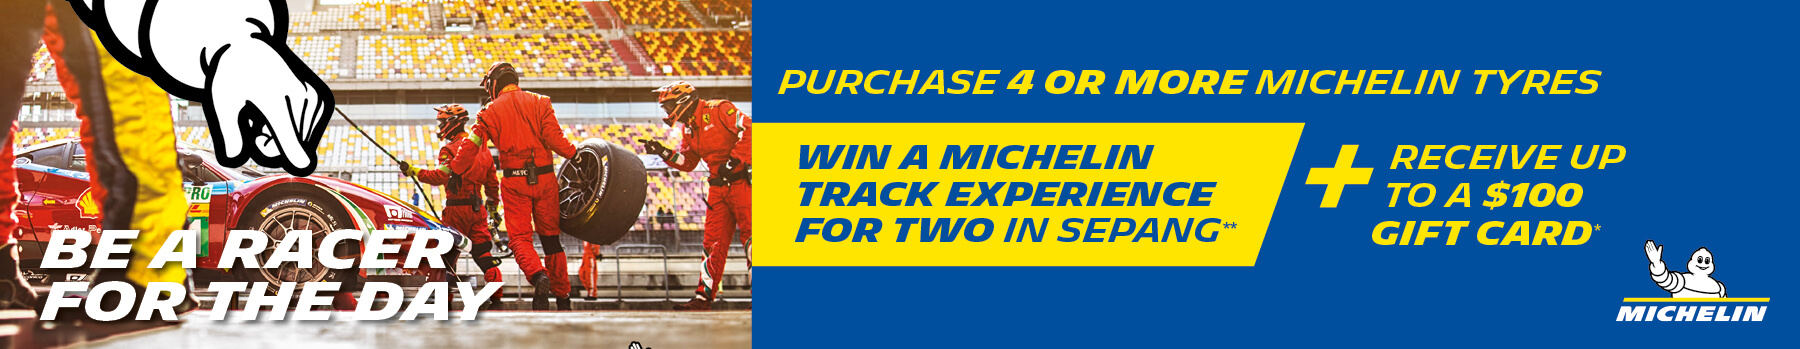 Purchase 4 ore more michelin tyres and win a Michelin track experience for two in sepang** and receive up to a $100 gift card*